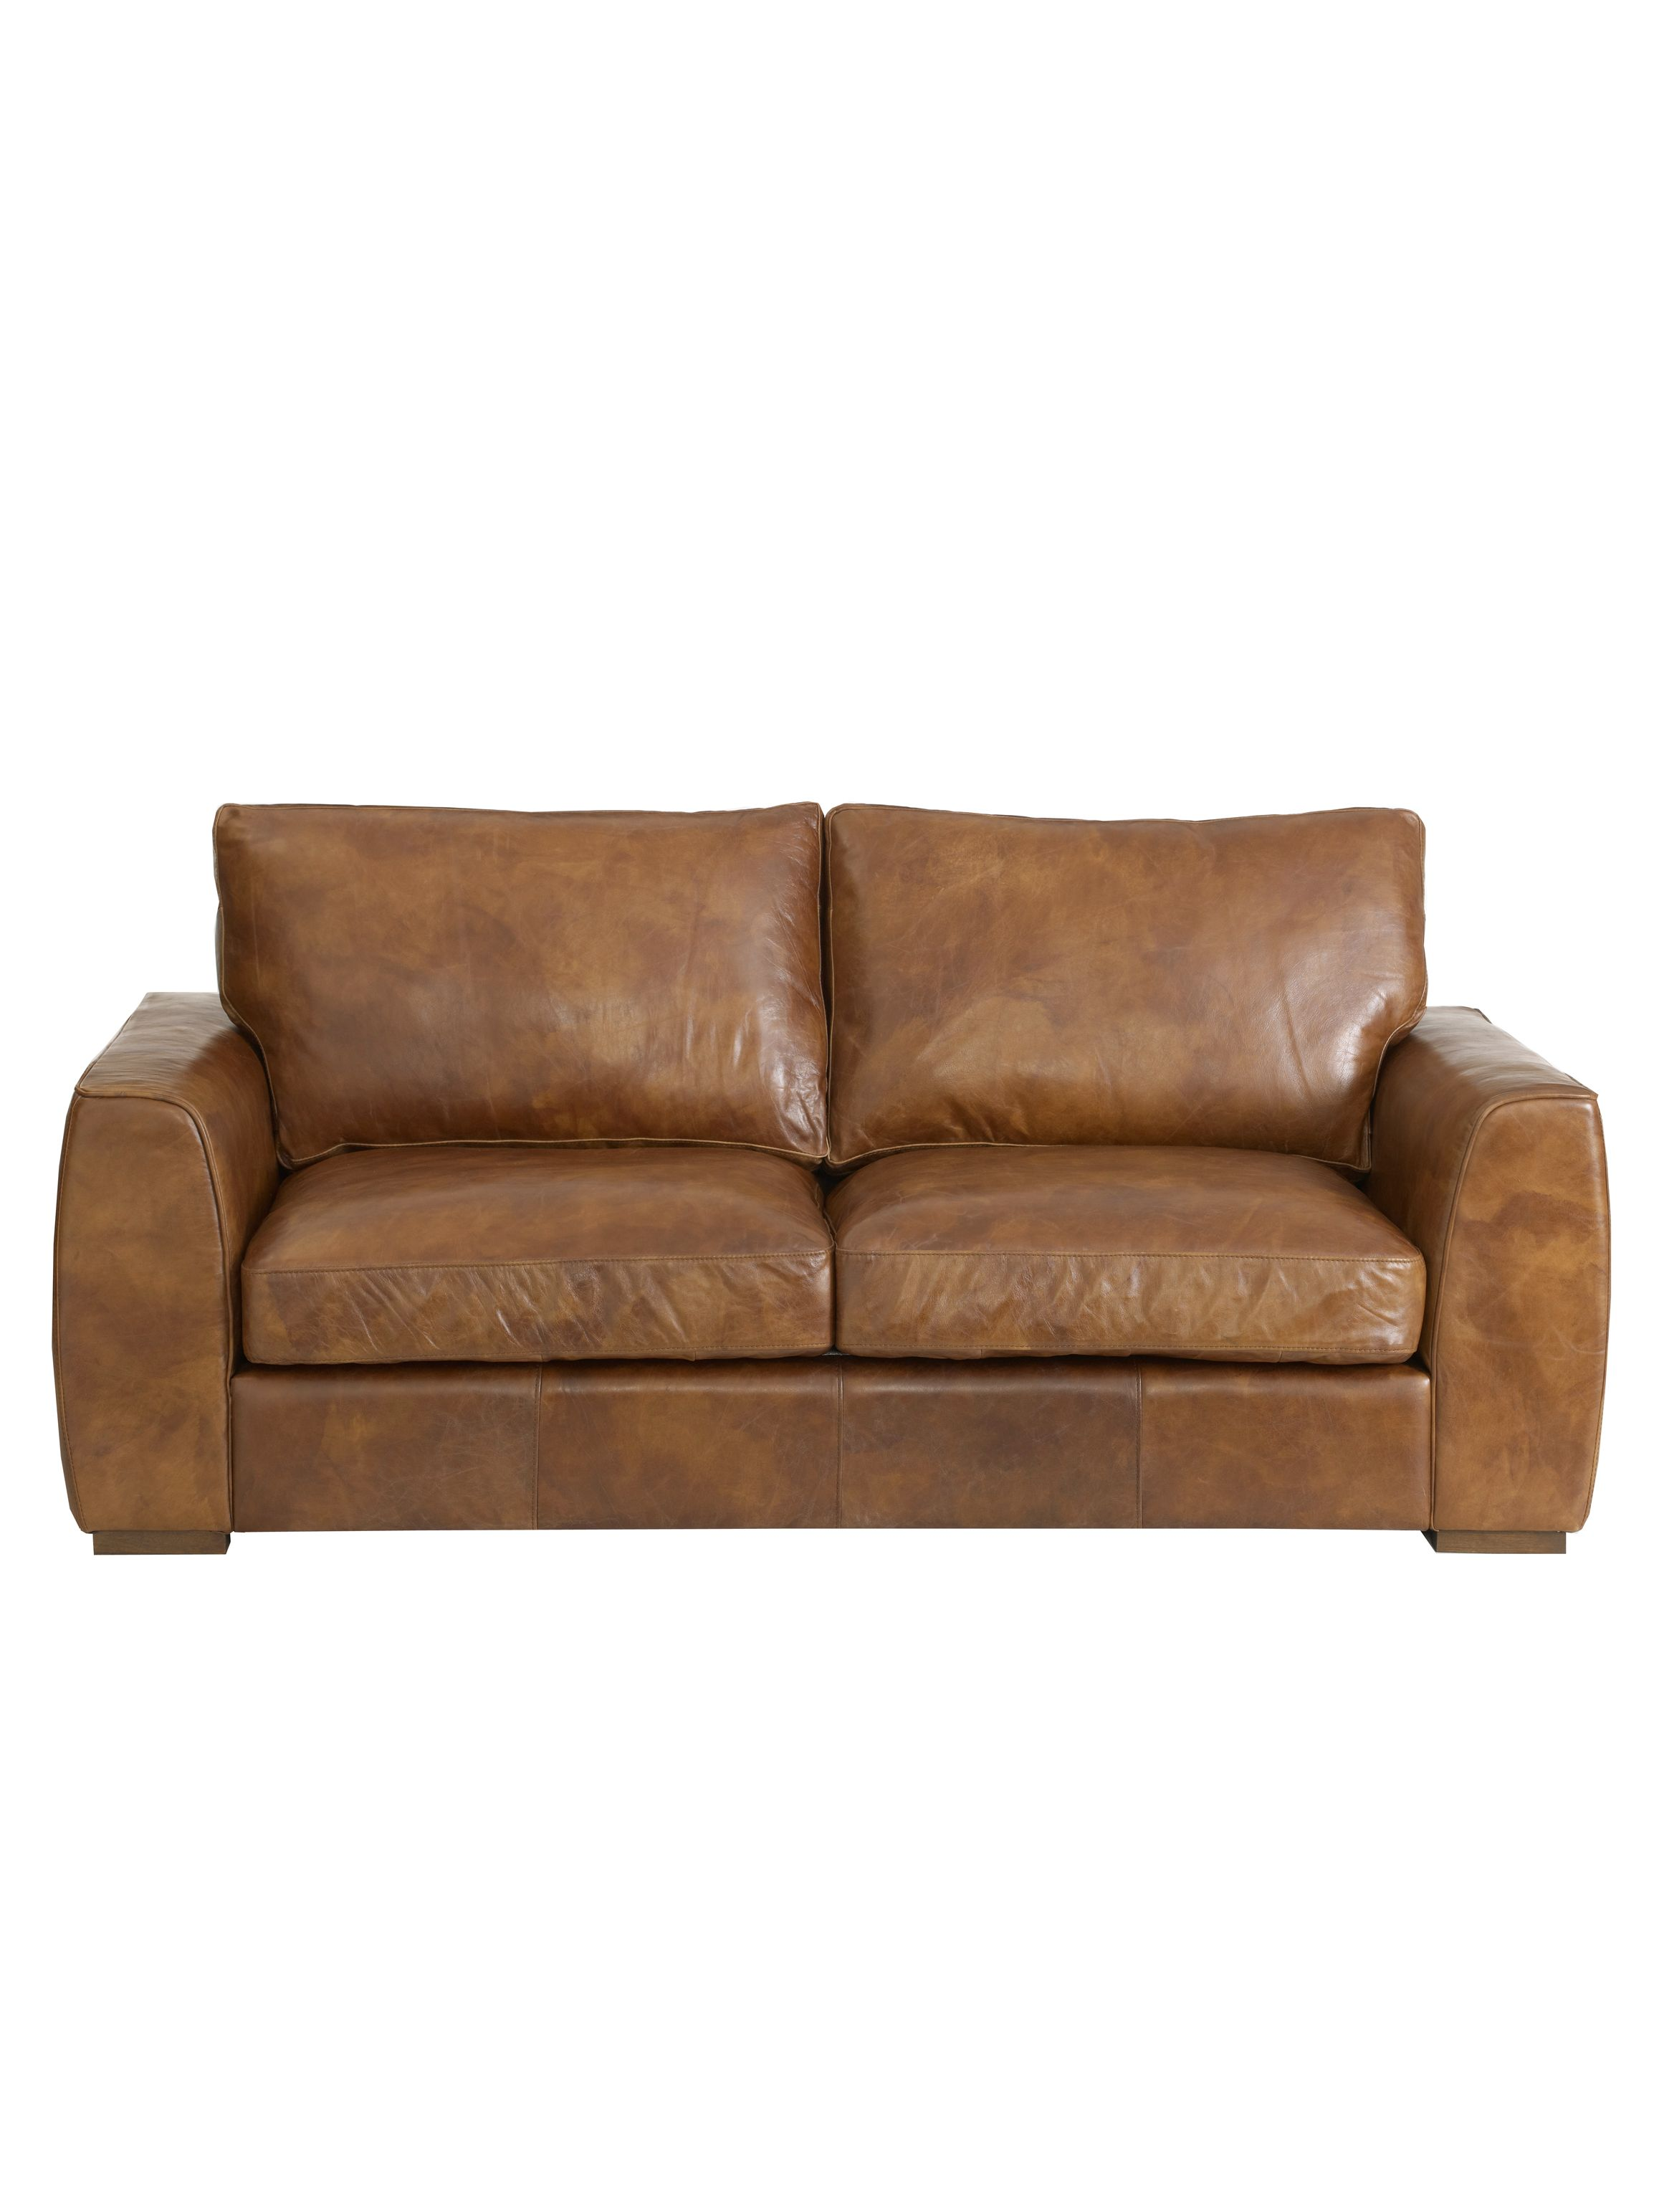 Colorado nut sofa range